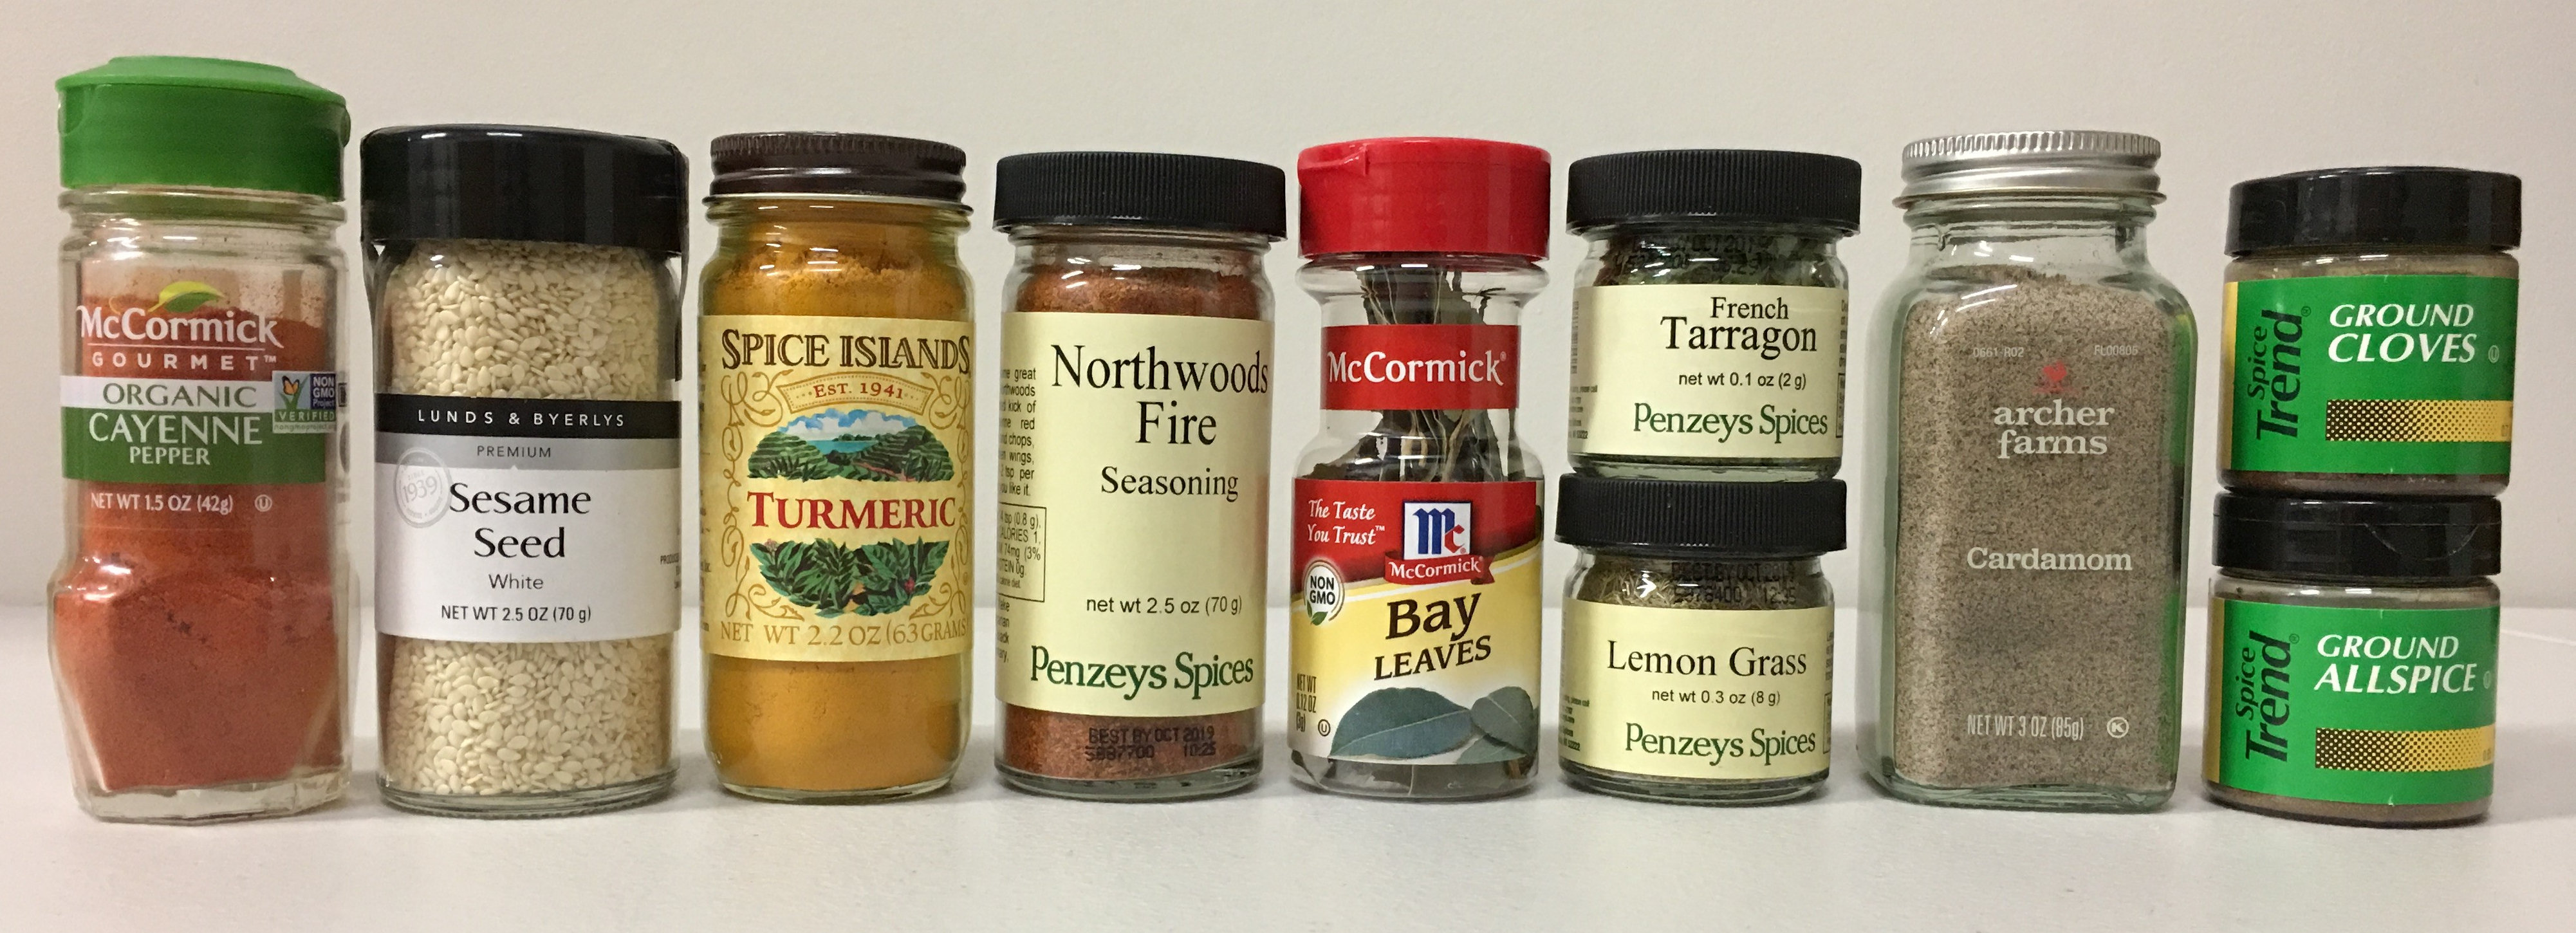 Variety of Standard Spice Jars